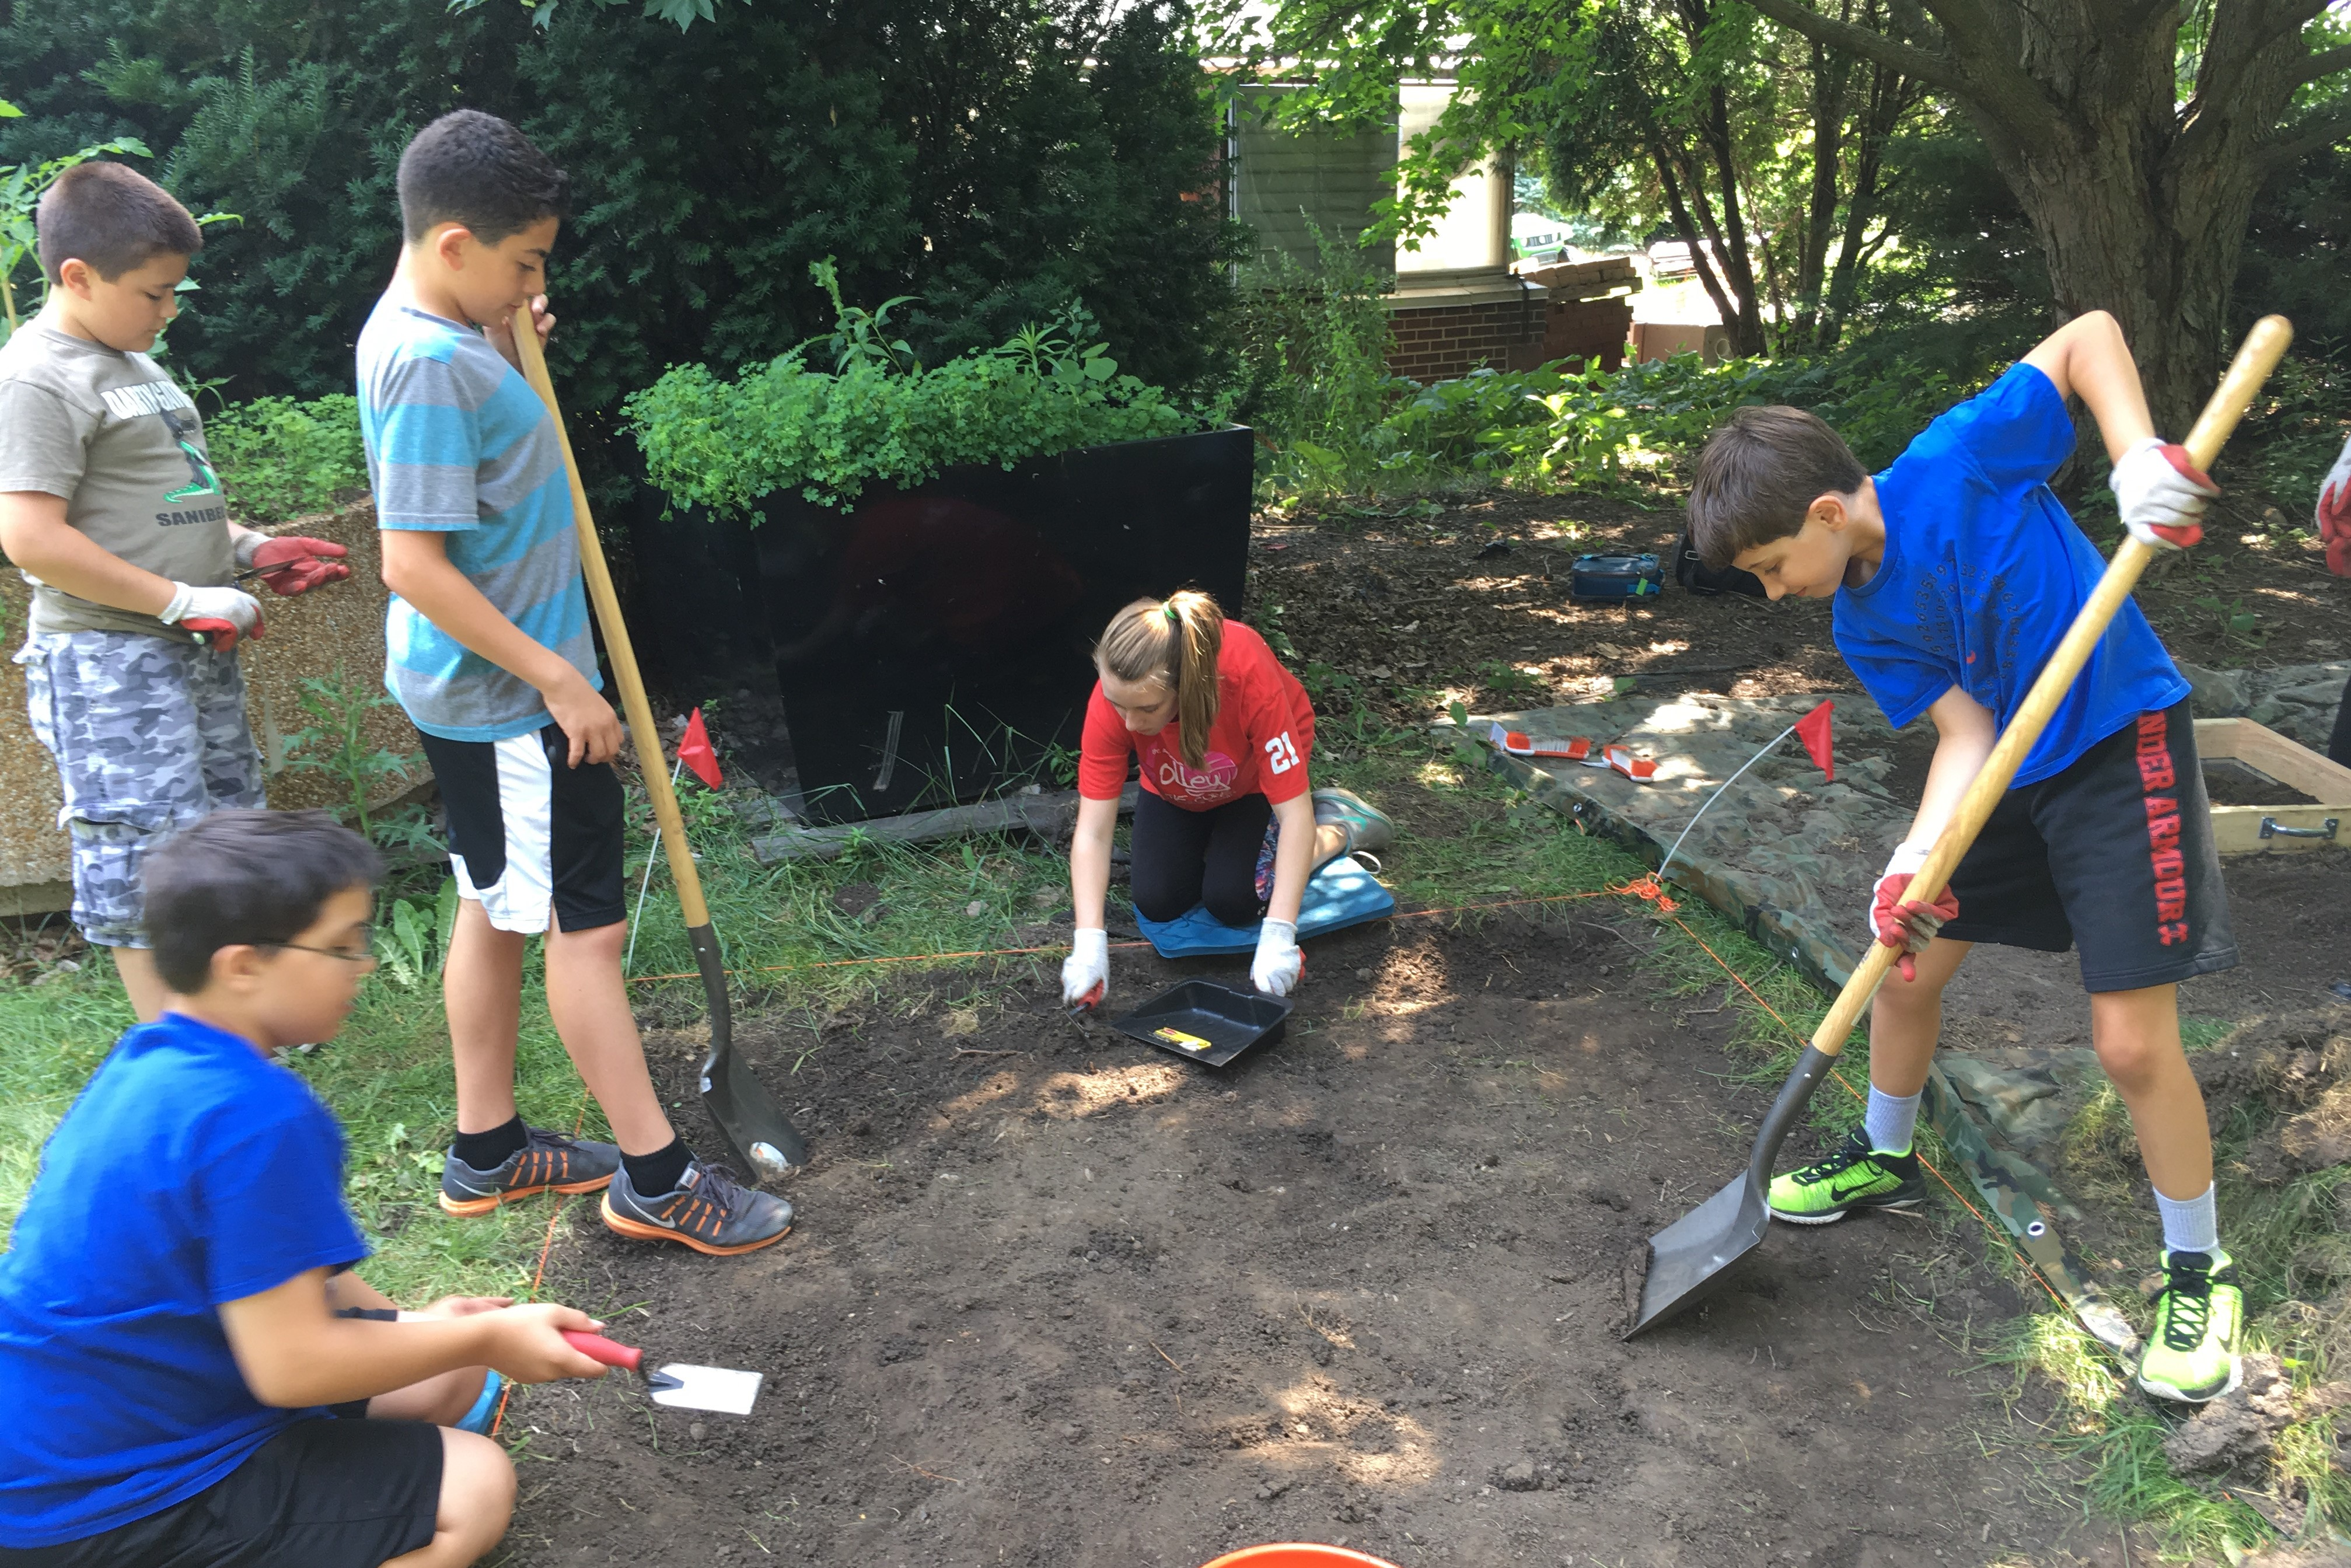 InZone campers on a digging excursion